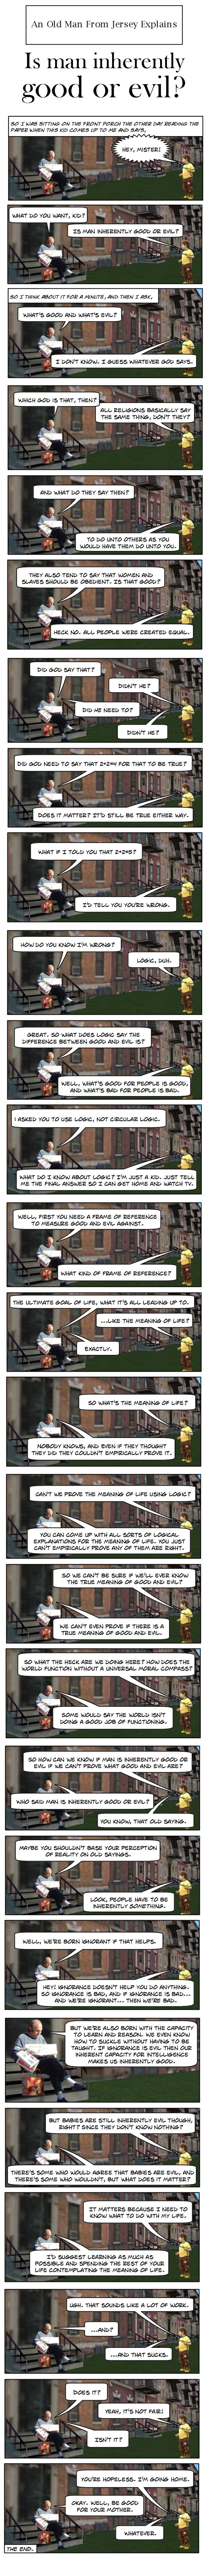 An old man sits on the steps to his dingy New Jersey apartment reading a newspaper. A naive but curious ten year old boy stands on the grass nearby about to ask a question.